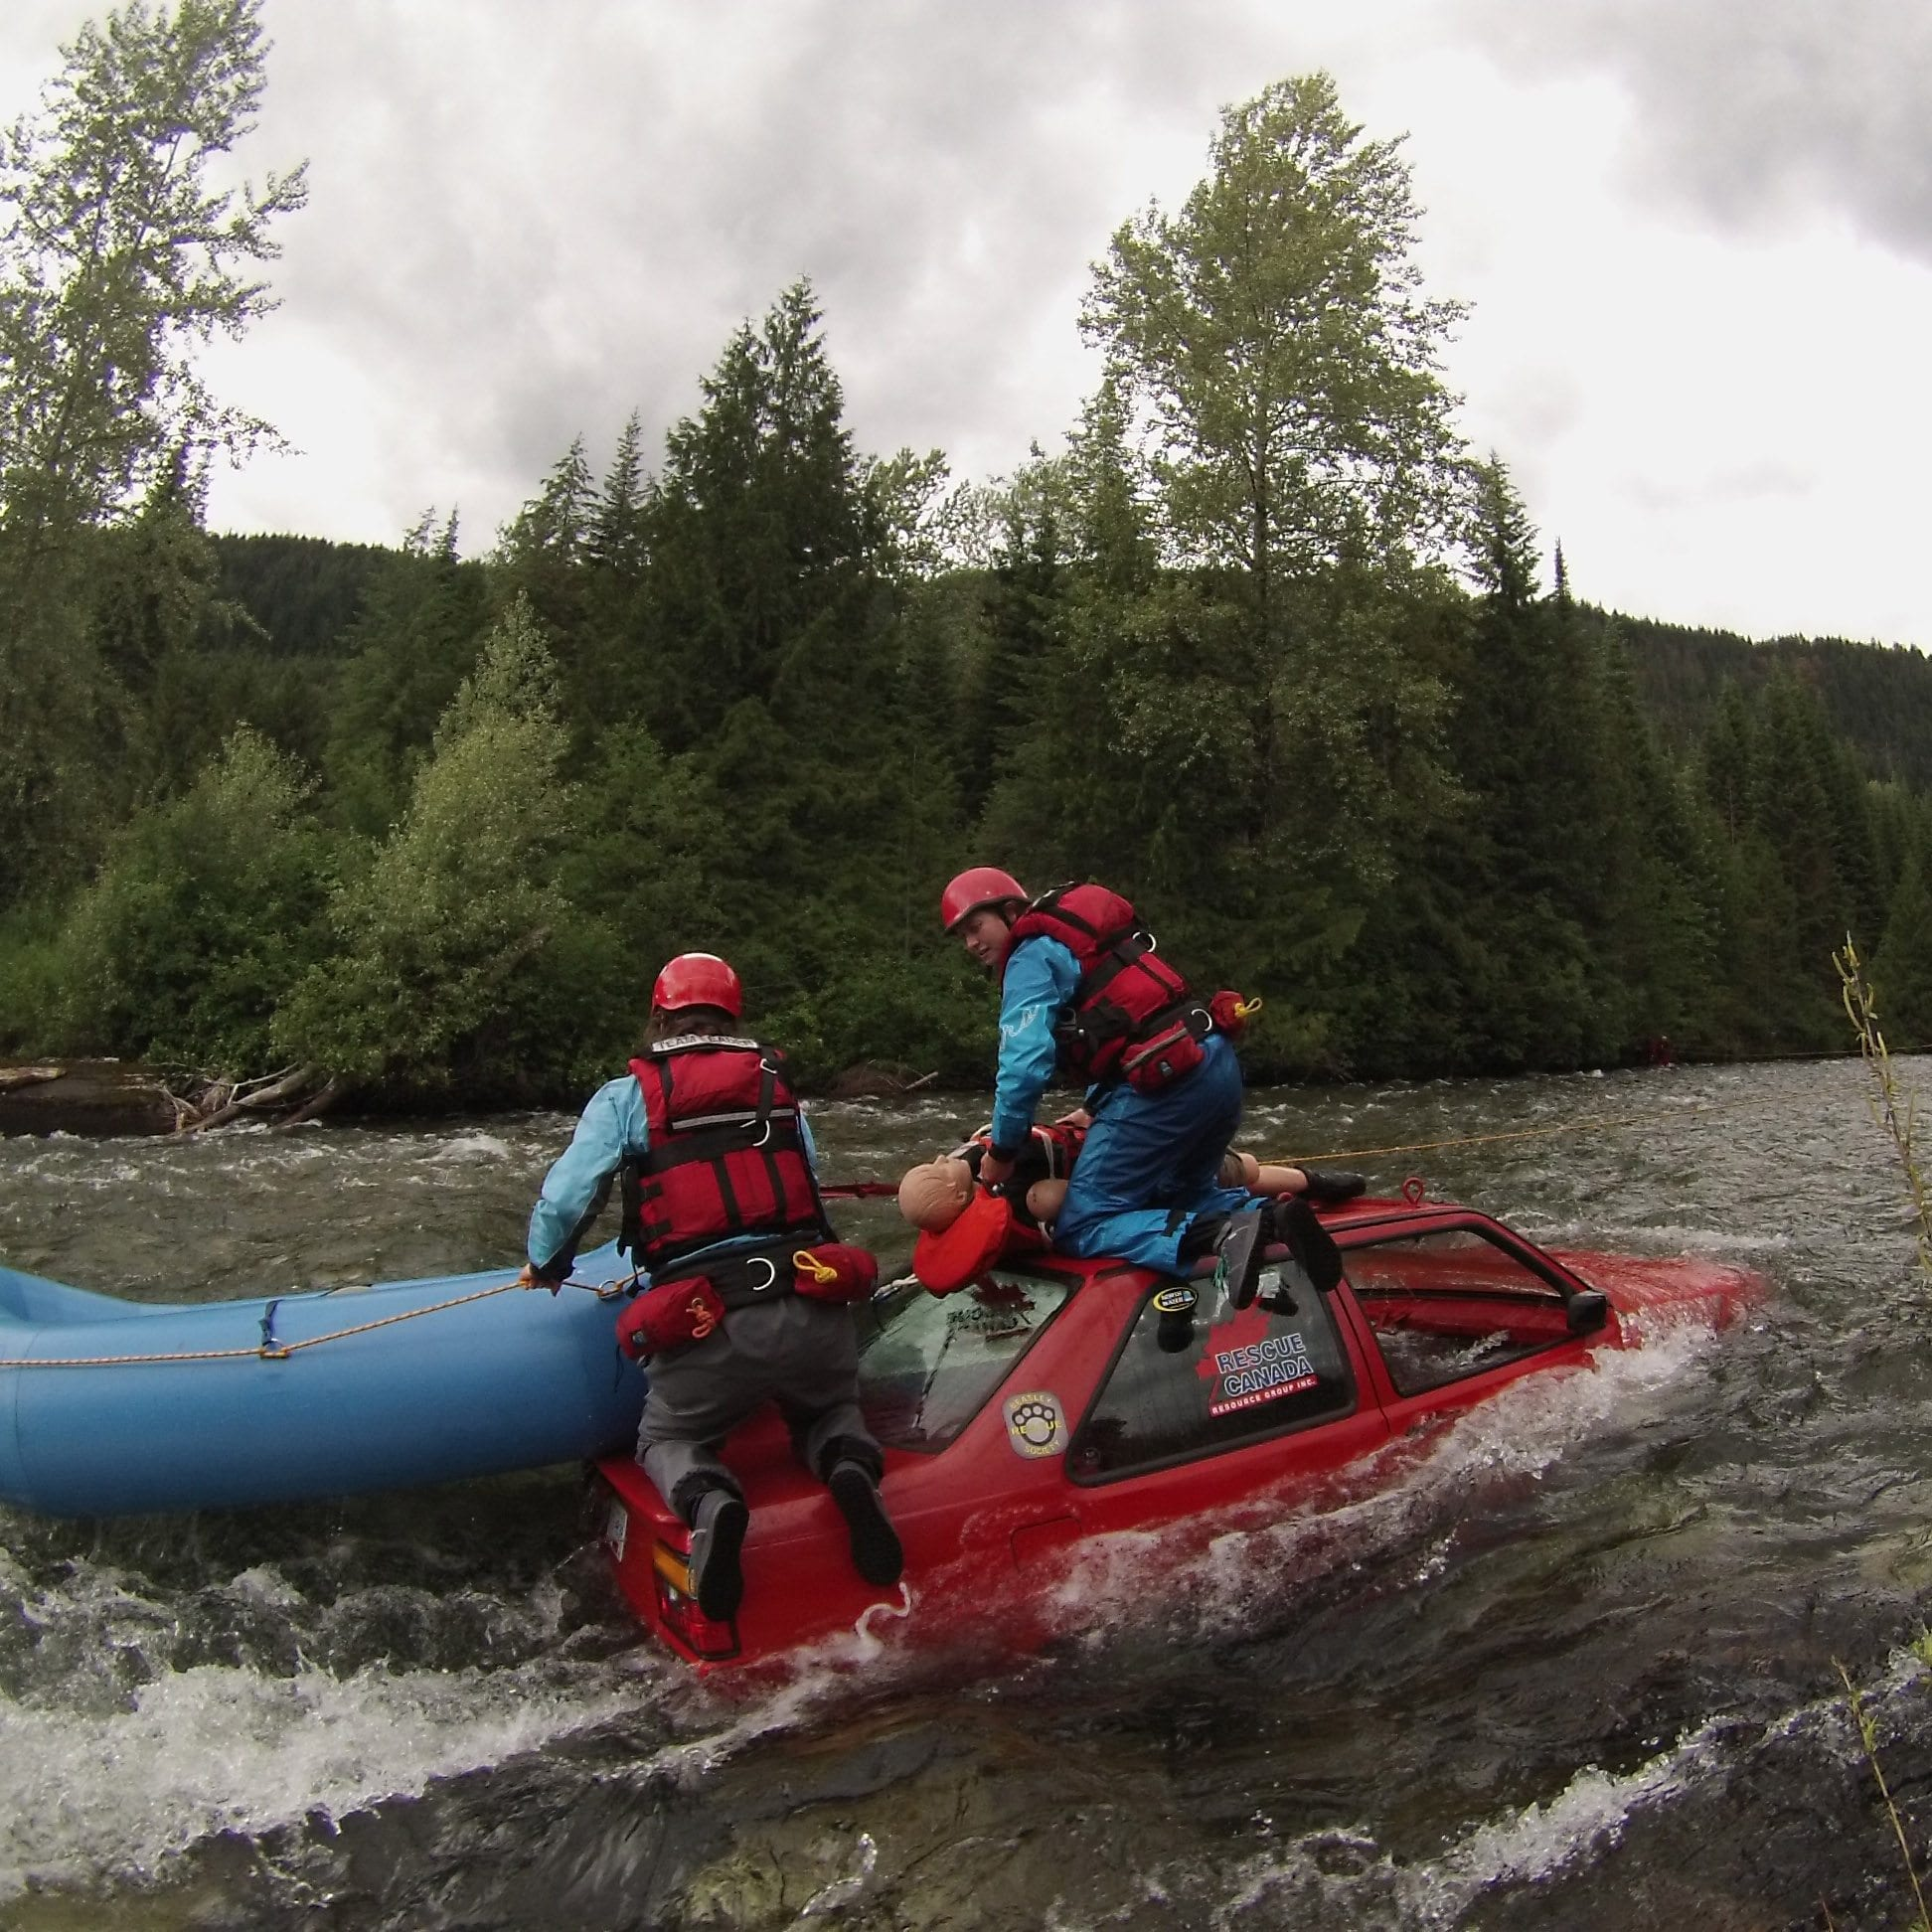 Swiftwater Training Rescue Course | Search and Rescue Training Course | First Responder Training